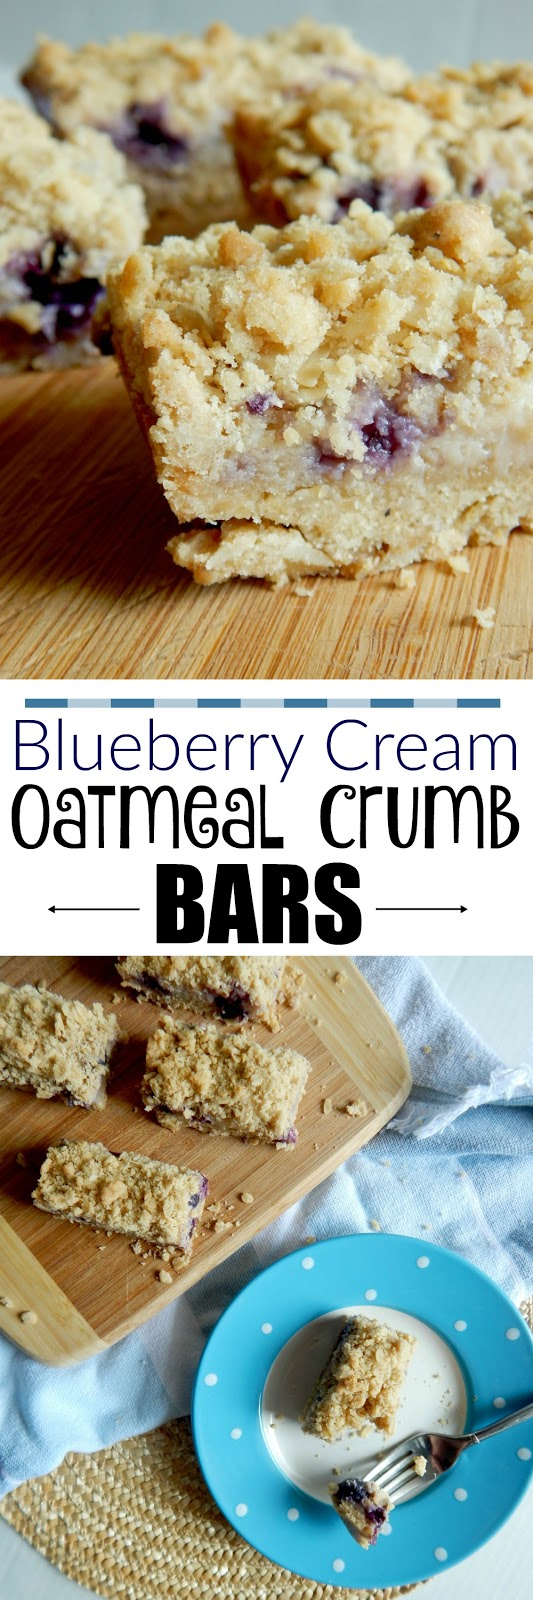 blueberry cream oatmeal crumb bars